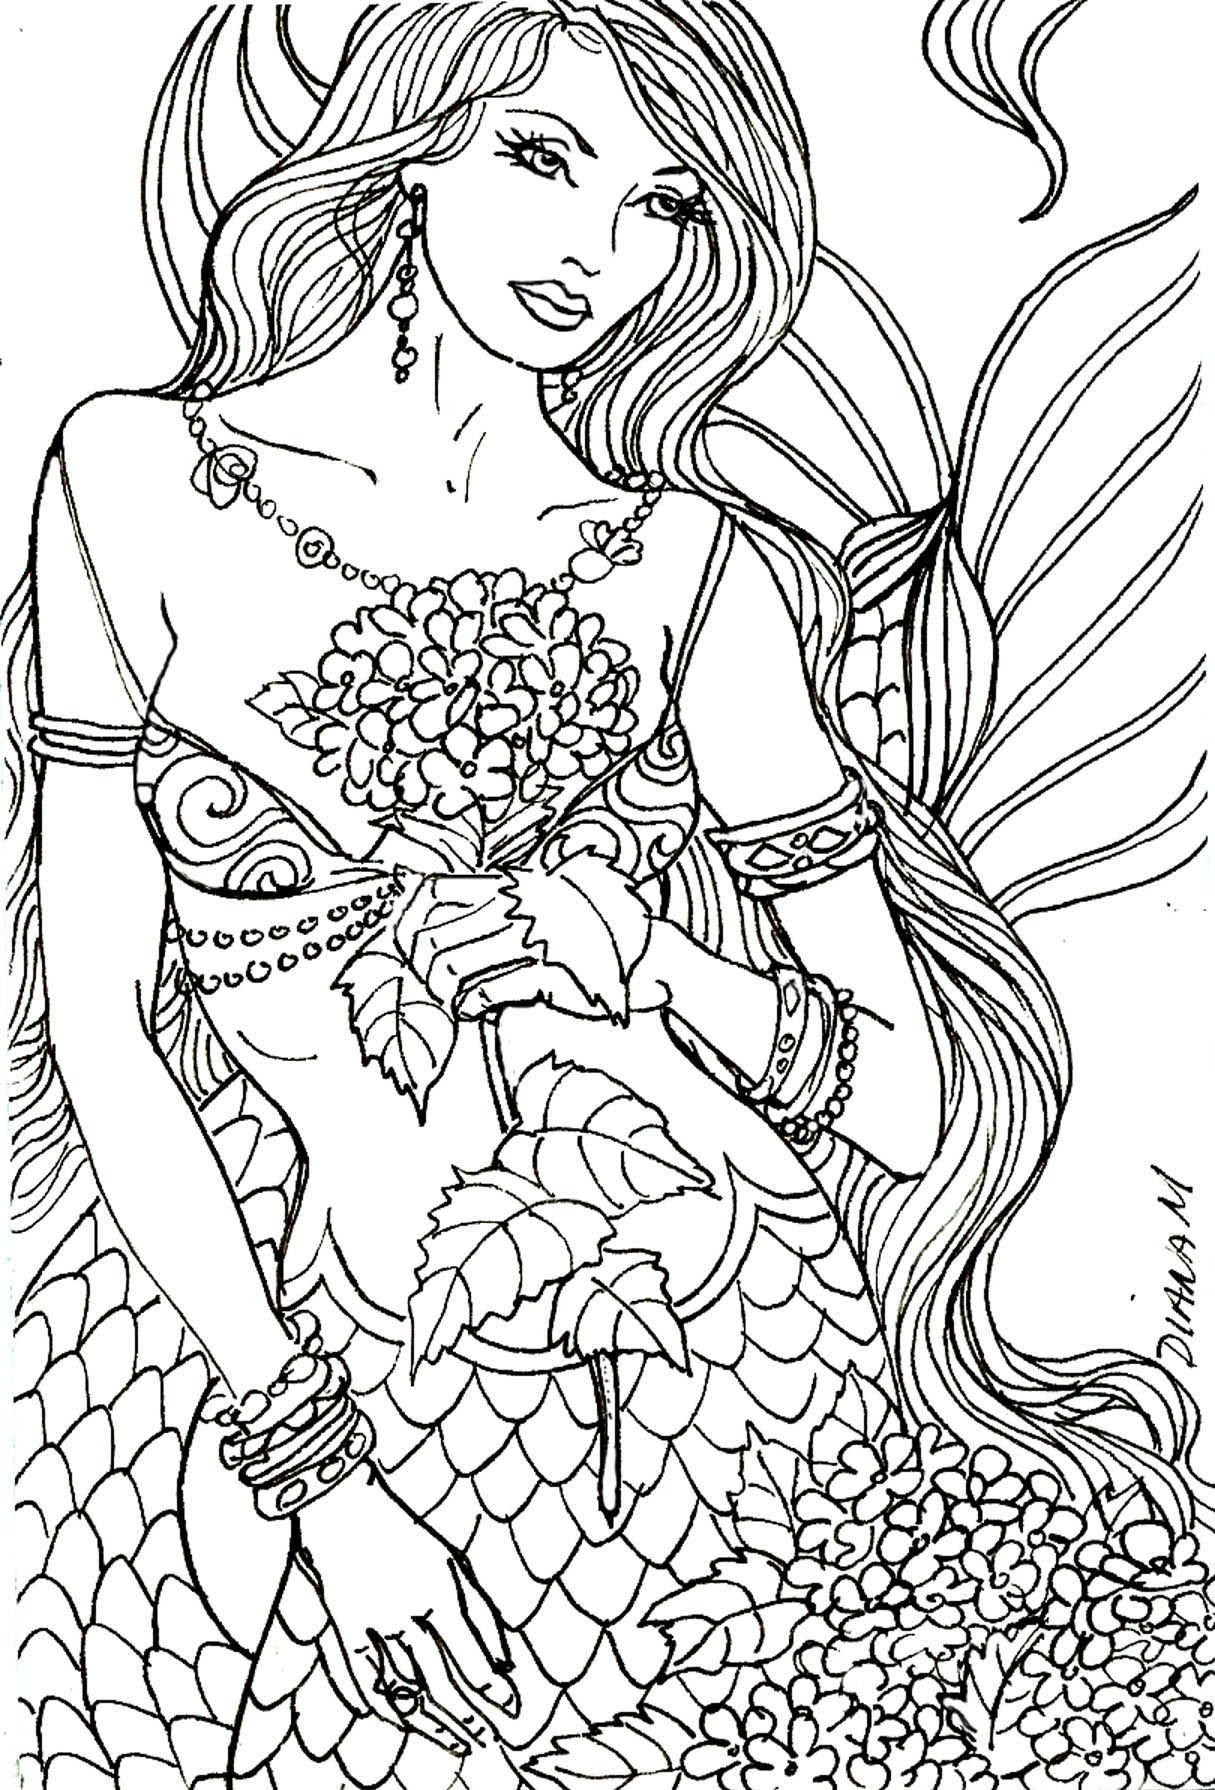 Coloring Sheets For Girls Mermairds  10 Gorgeous Free Adult Coloring Pages